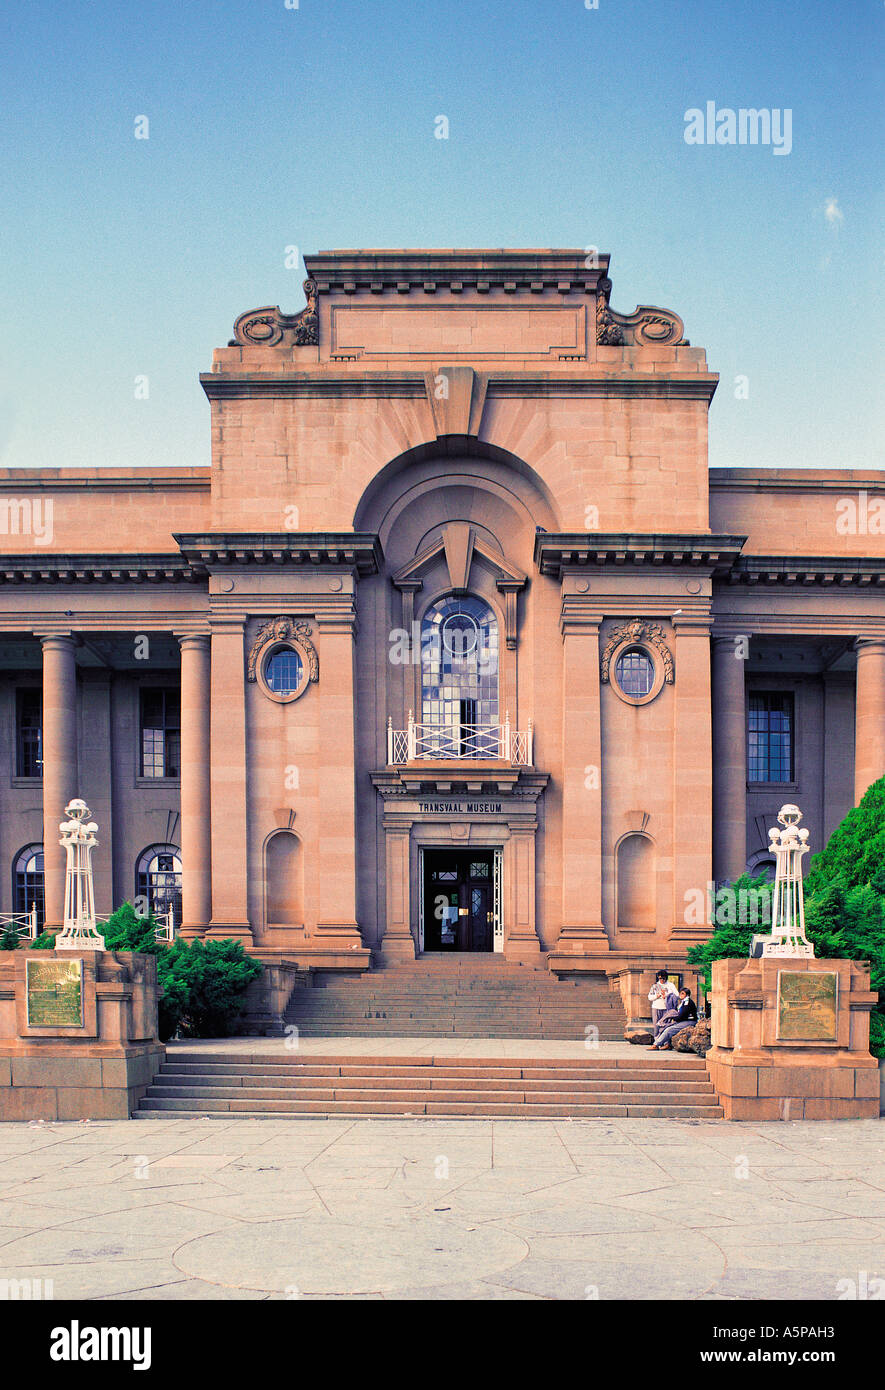 Entrance to the Transvaal Museum Pretoria South Africa - Stock Image